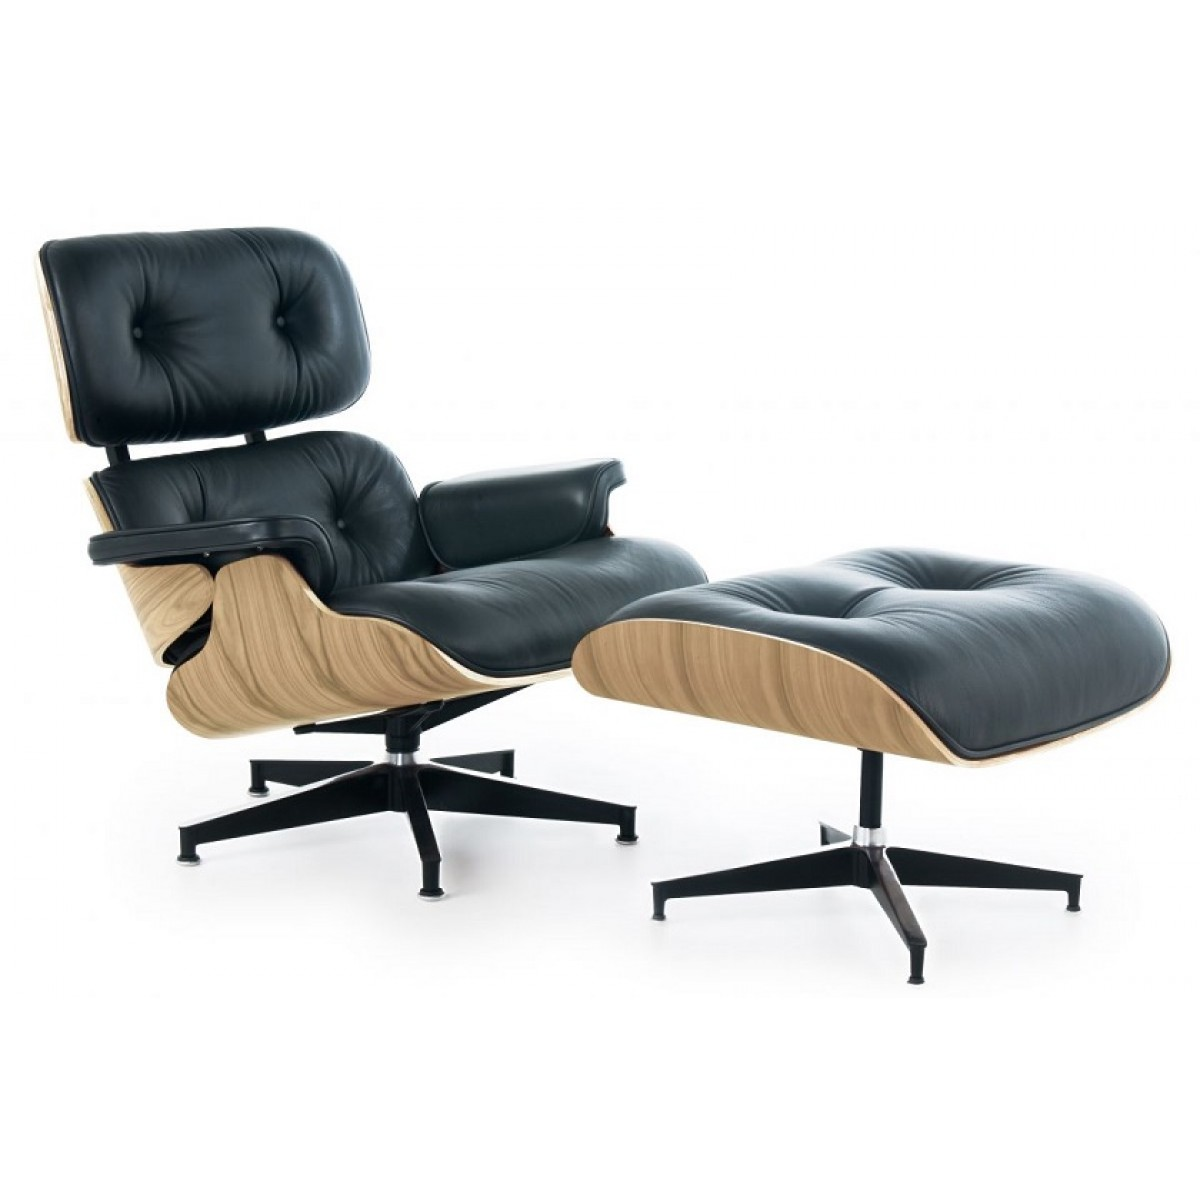 replica eames lounge chair and ottoman black. eames style lounge chair and ottoman black leather oak plywood - replica c